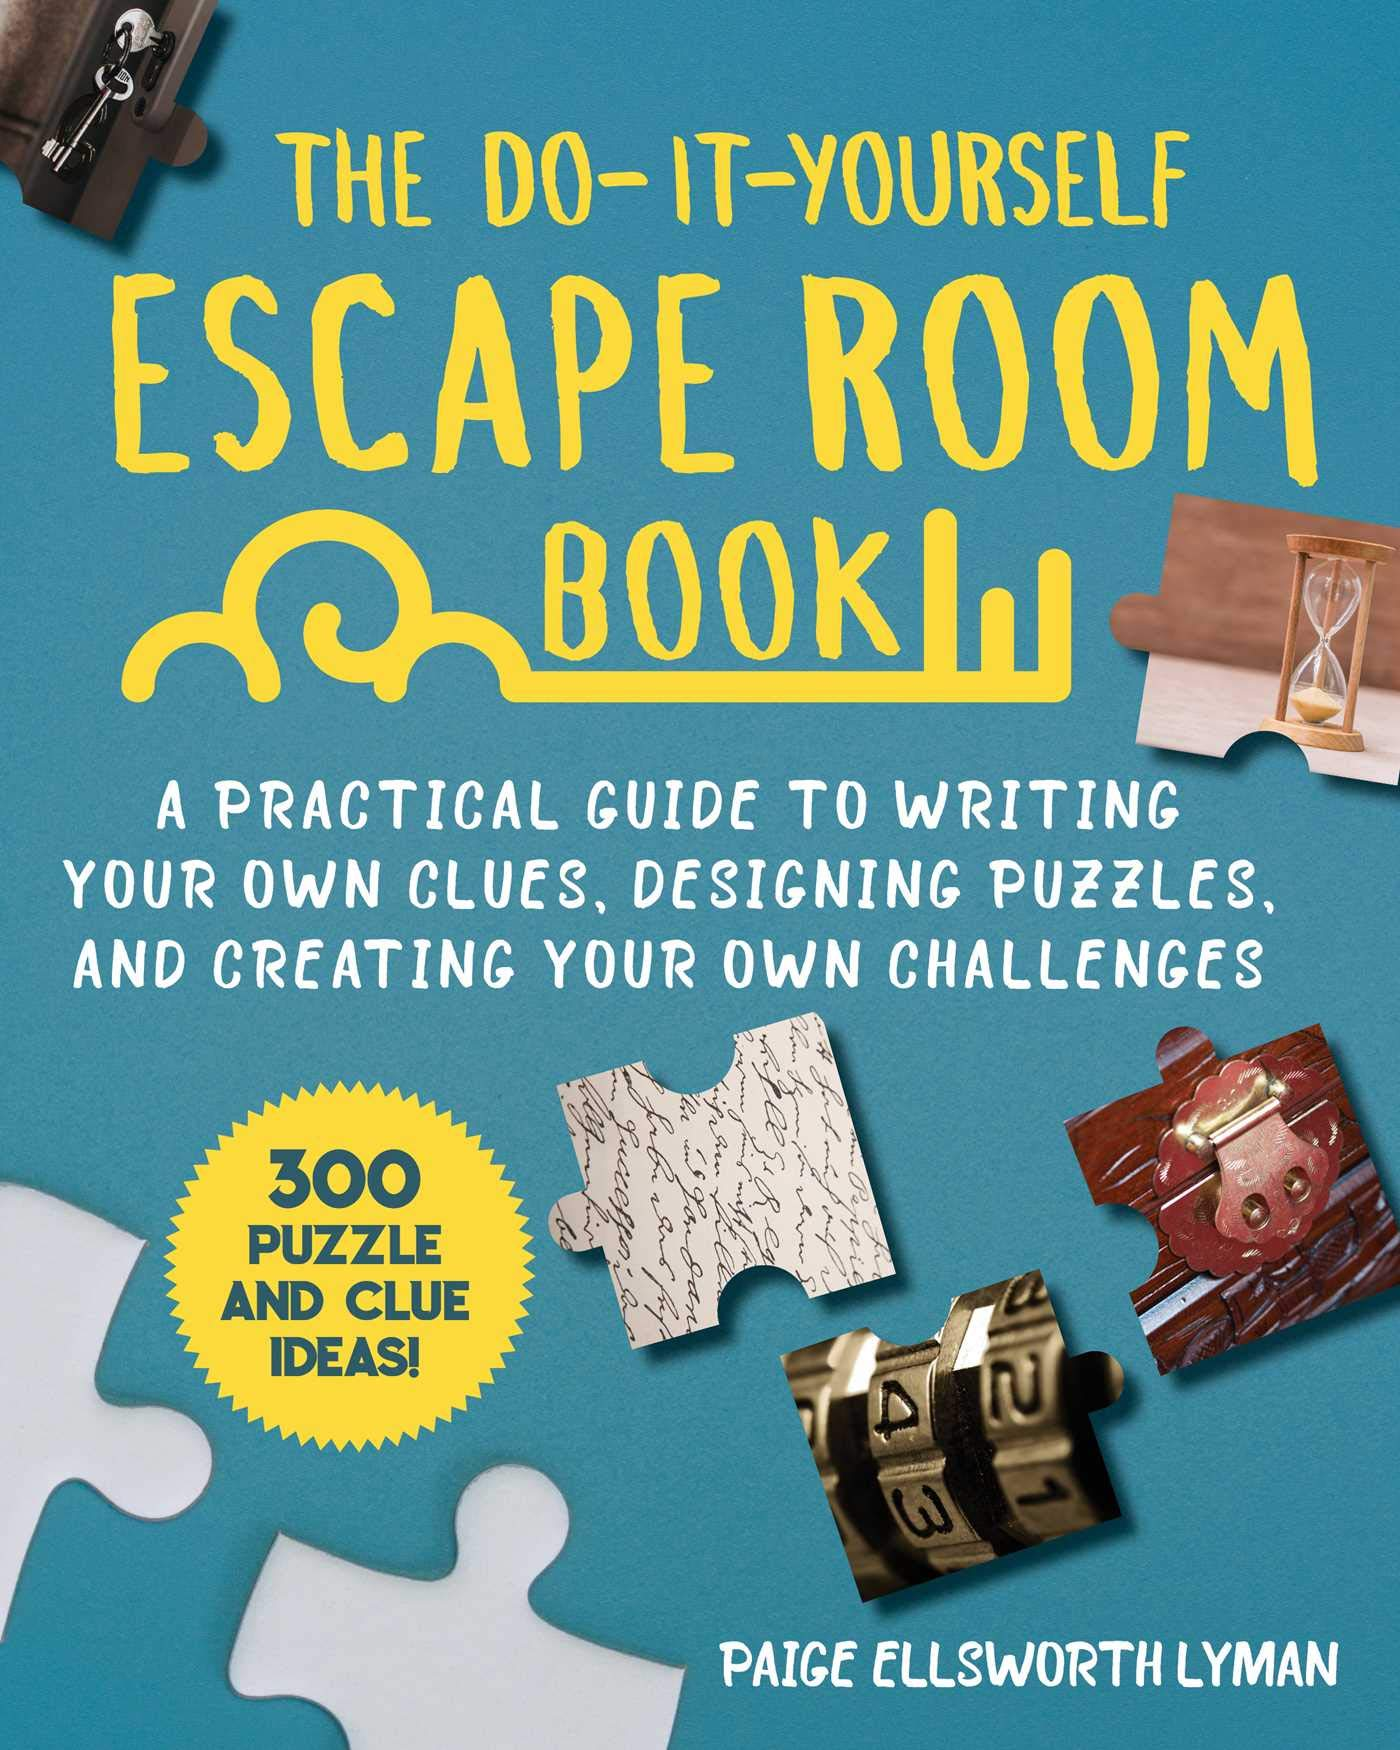 The Do It Yourself Escape Room Book A Practical Guide To Writing Your Own Clues Designing Puzzles And Creating Your Own Challenges Lyman Paige Ellsworth 9781510758803 Amazon Com Books